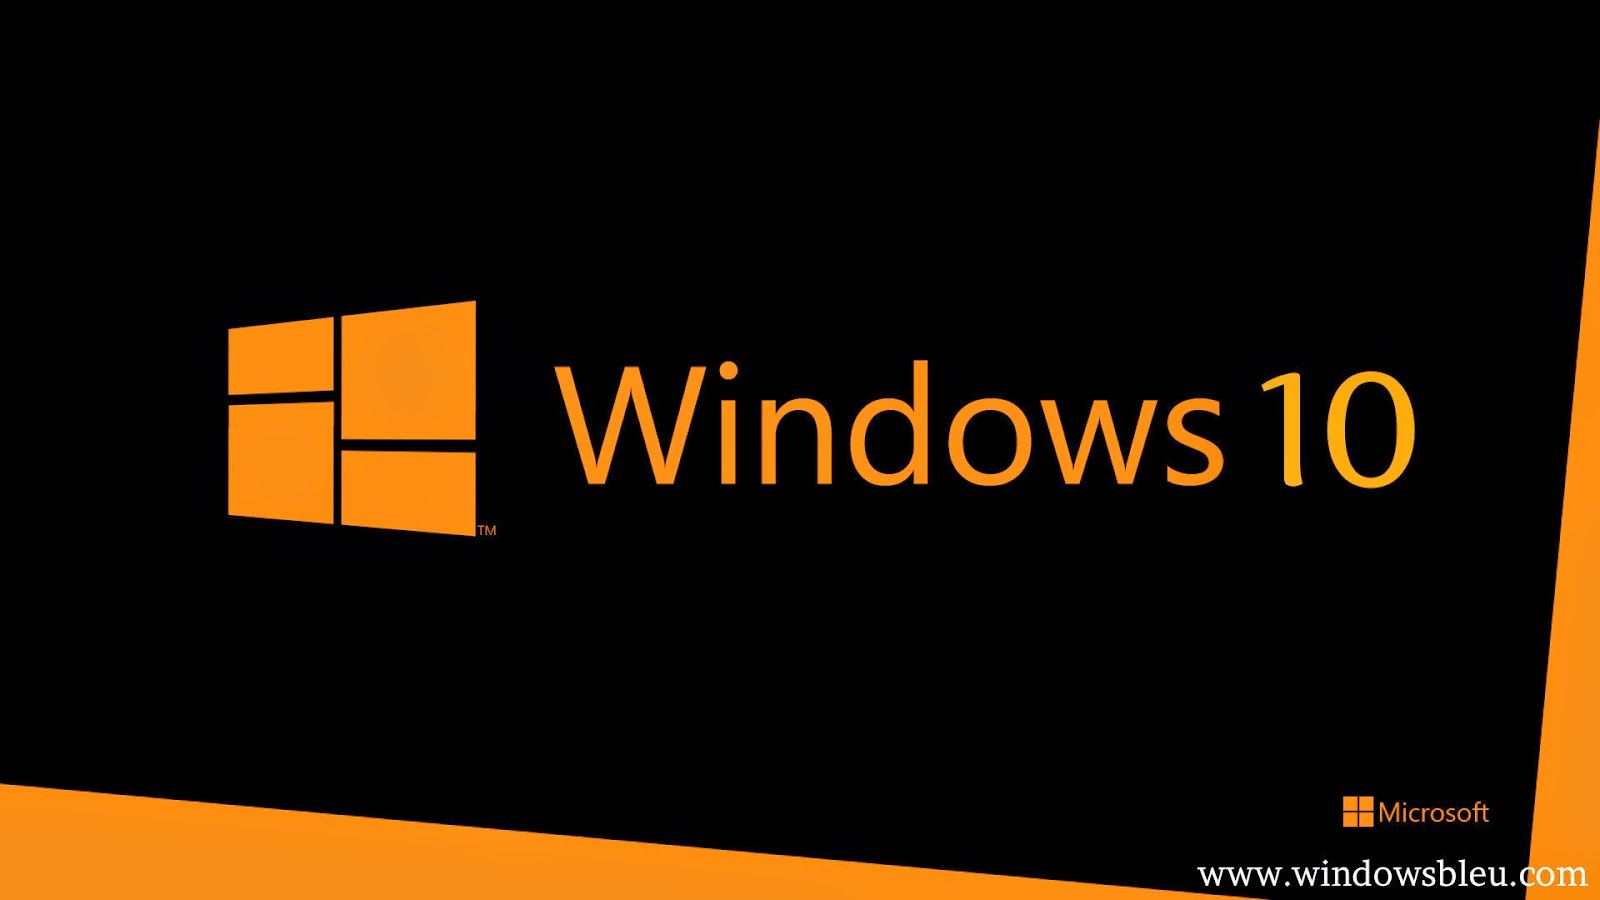 Windows 10 Wallpapers Hd Pack Wallpapersafari Windows 10